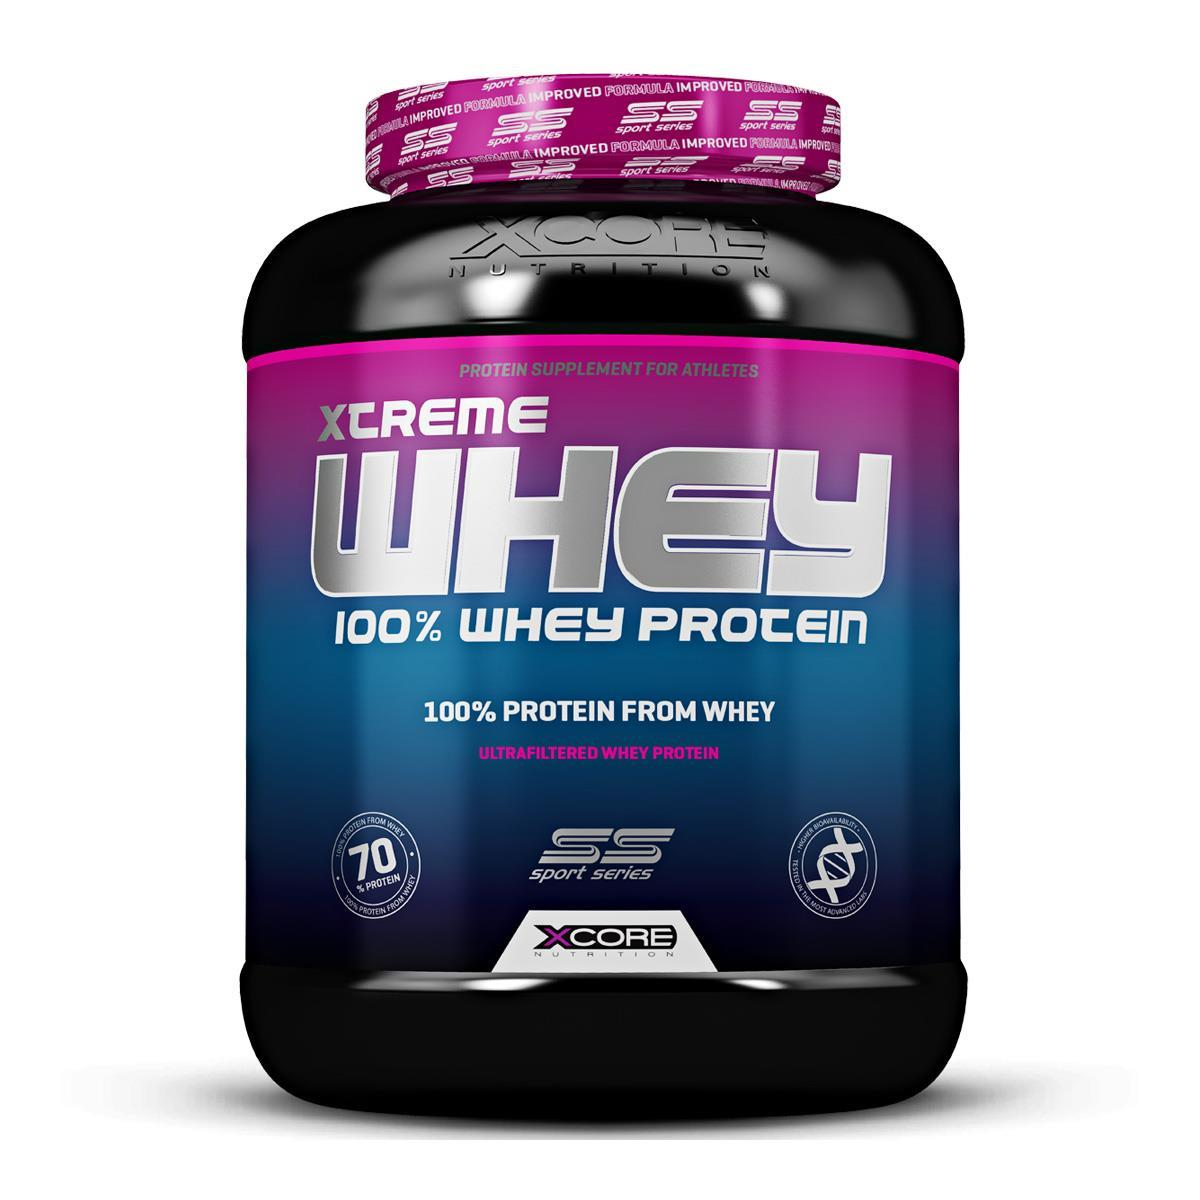 9c54239ad XTREME WHEY PROTEIN - XCore Nutrition